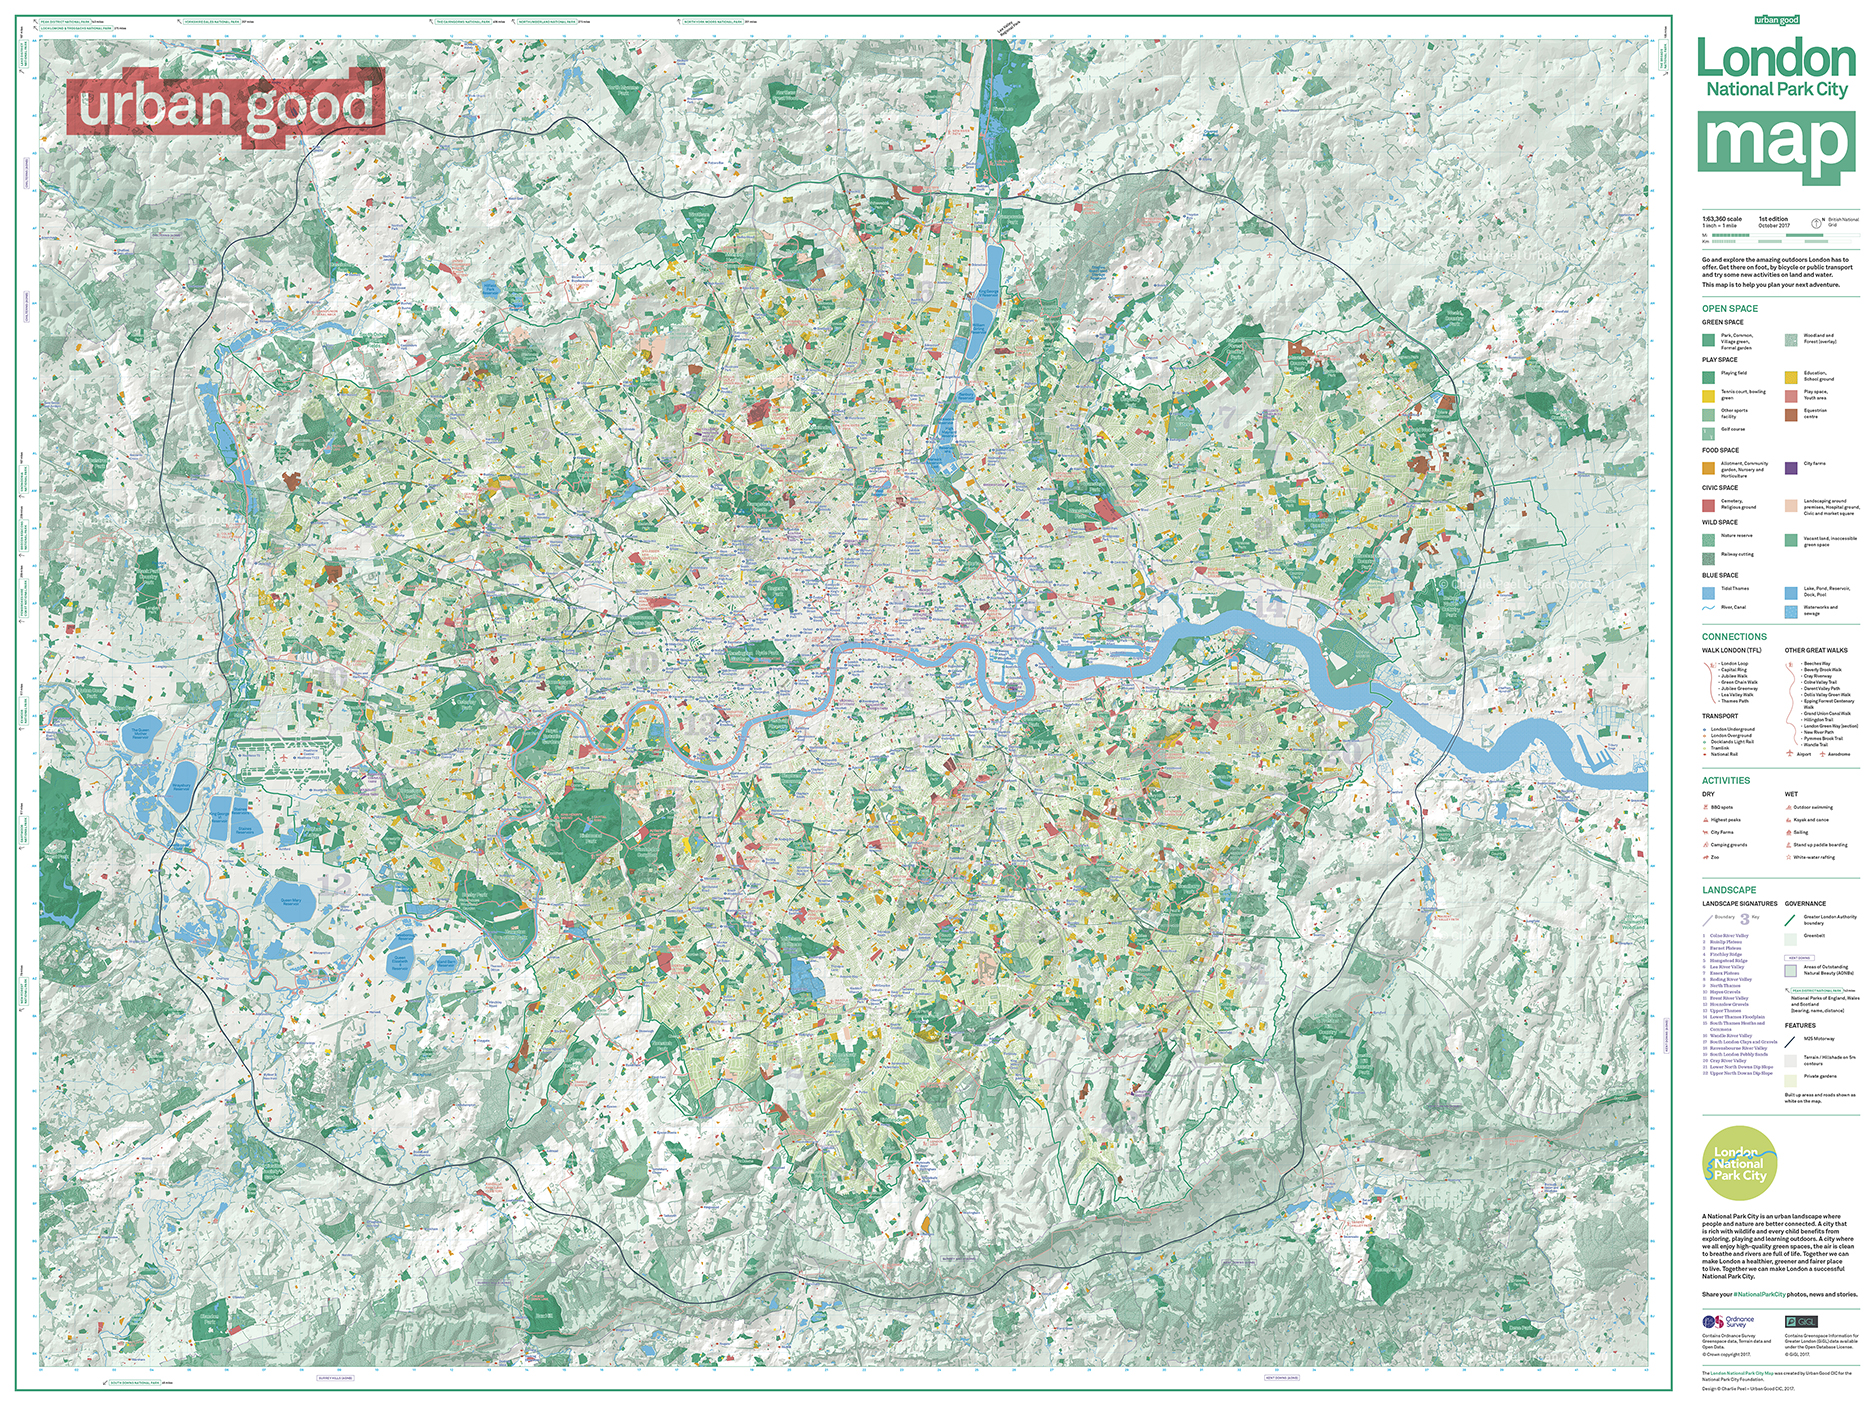 The Urban Good     London National Park City map     Urban Good The Urban Good     London National Park City map